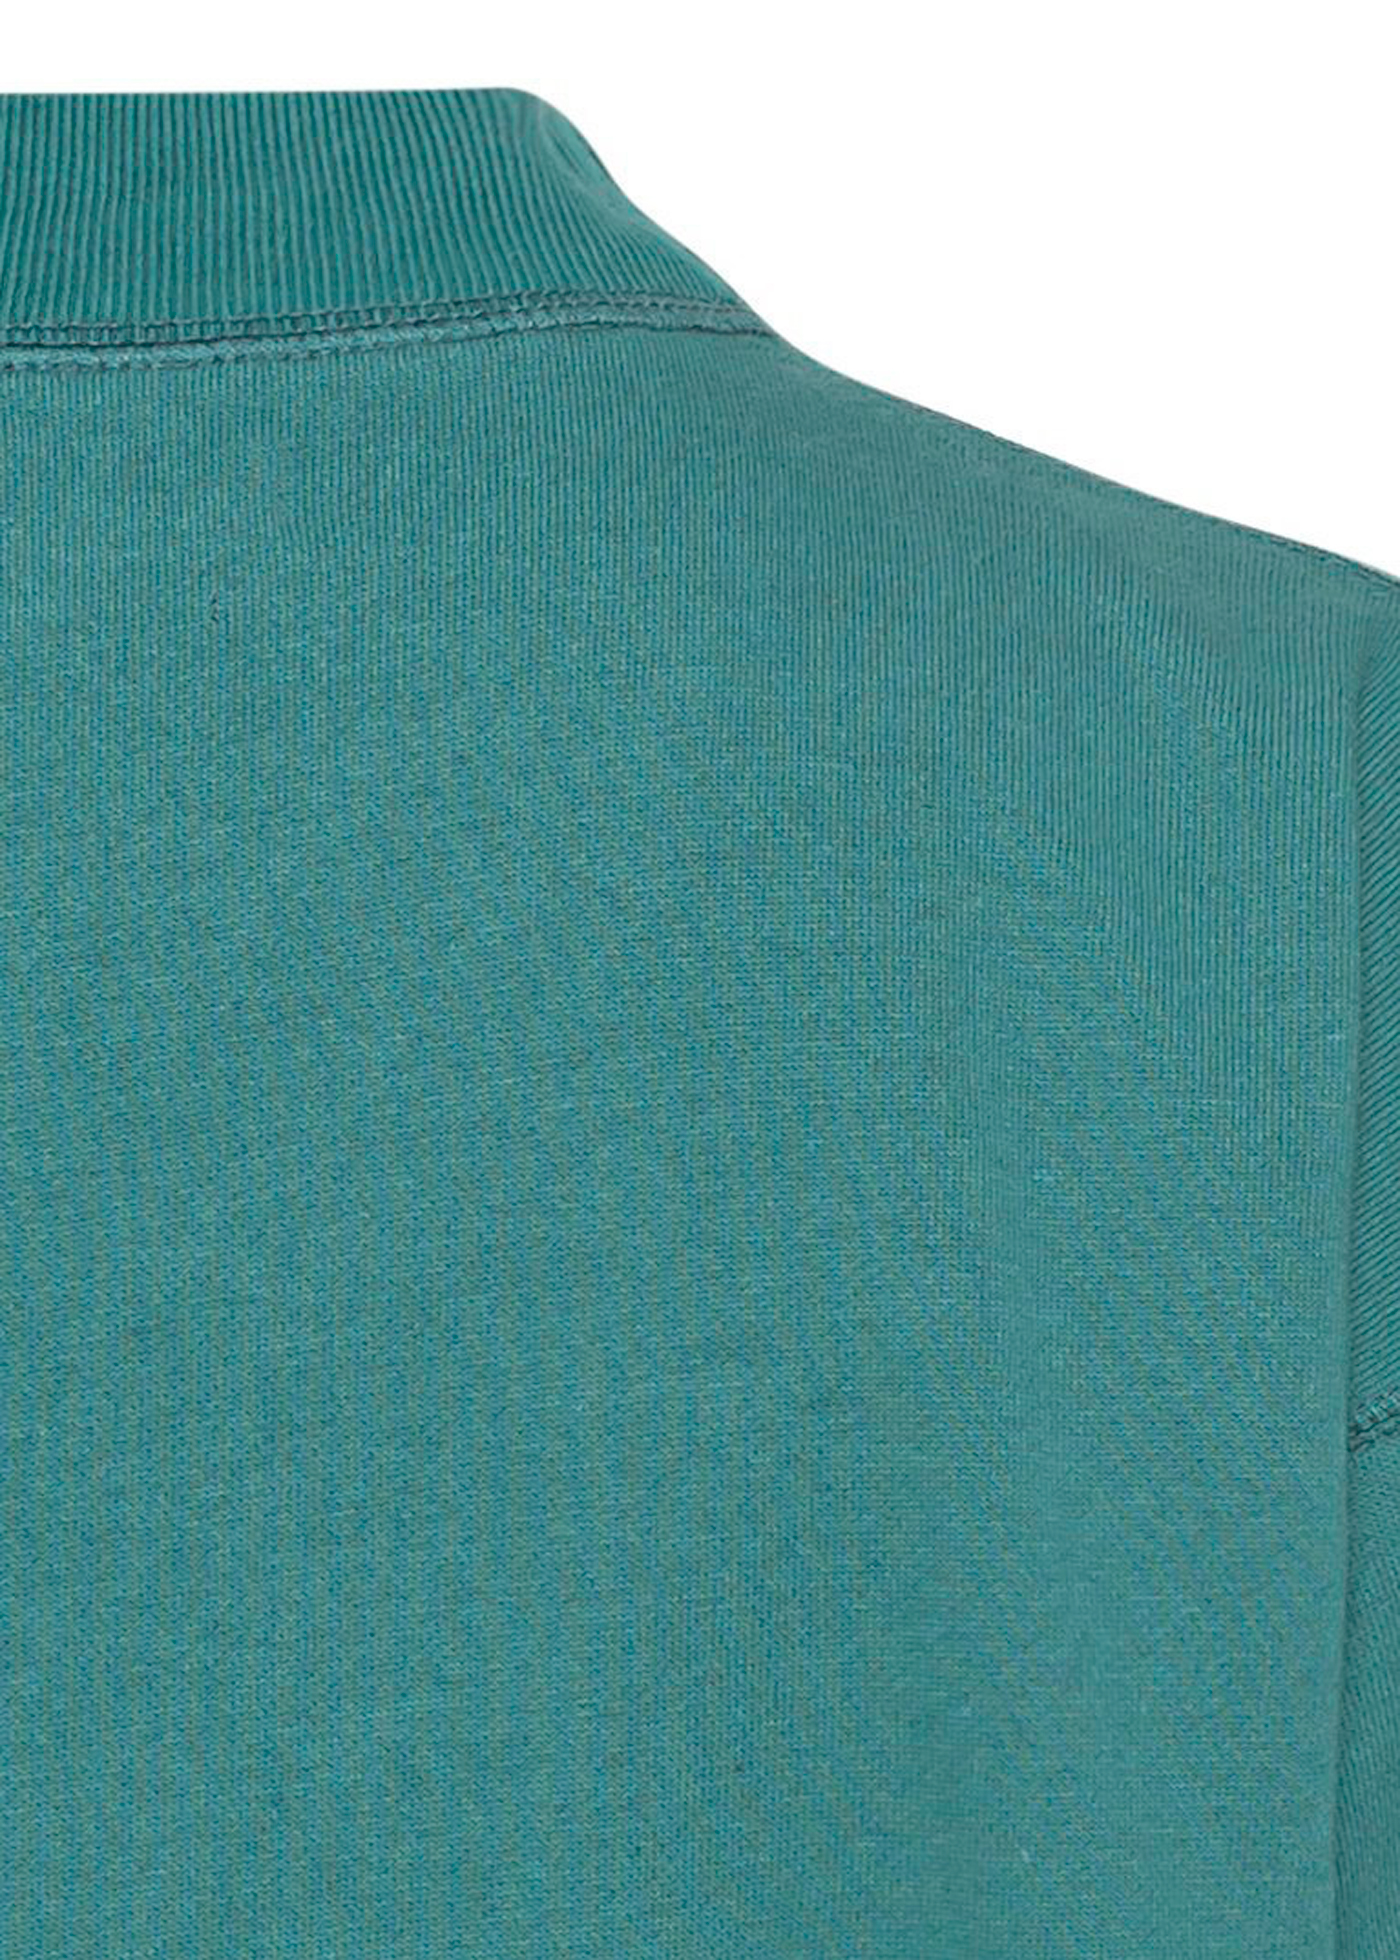 Sweat shirt MOBY image number 3